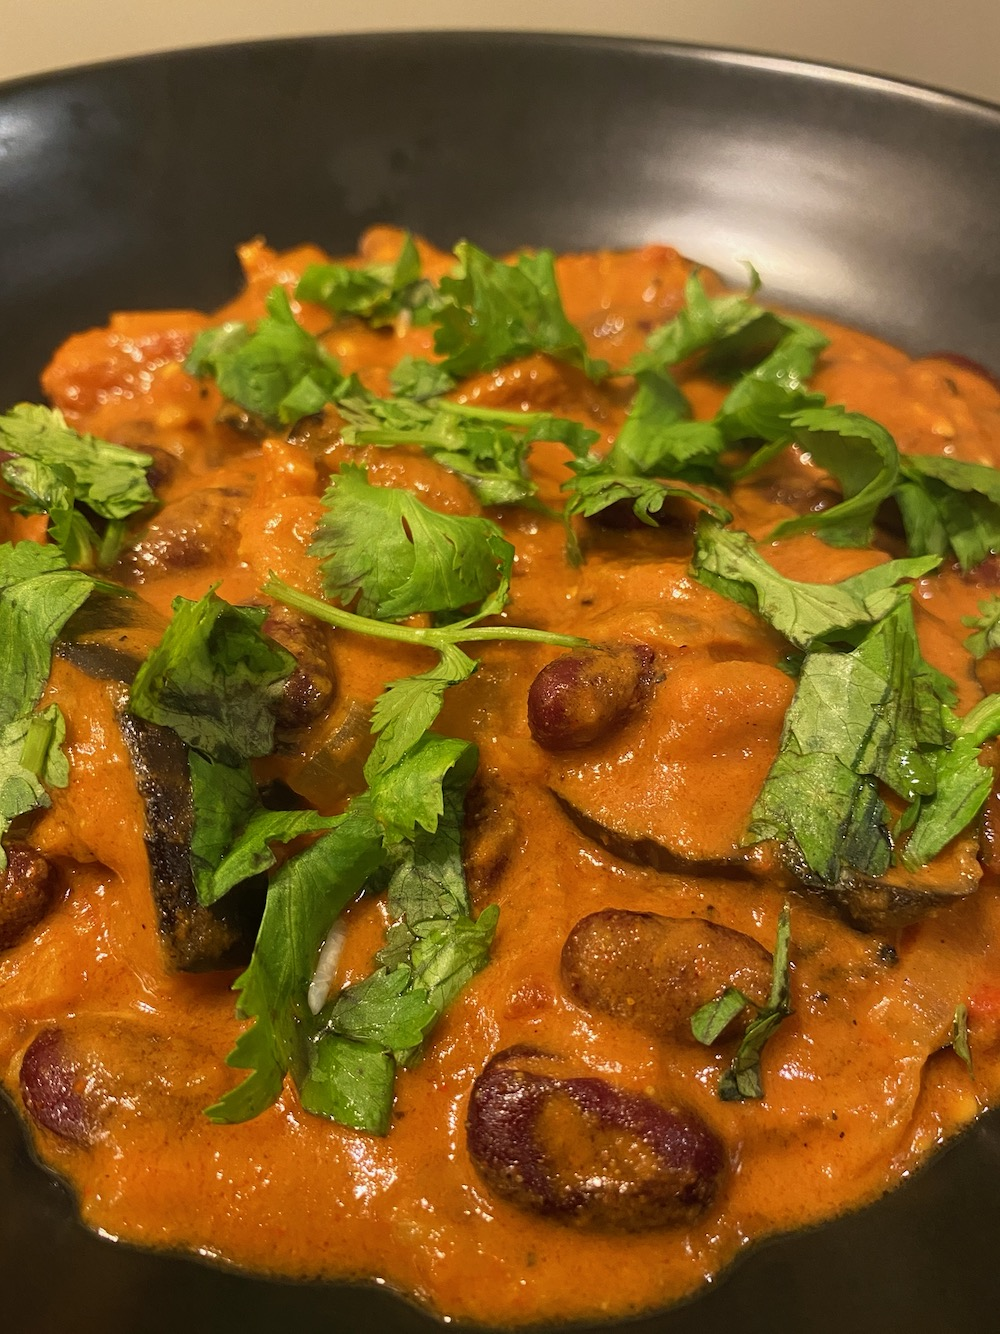 Vegan Holiday Recipes: Indian Eggplant Curry